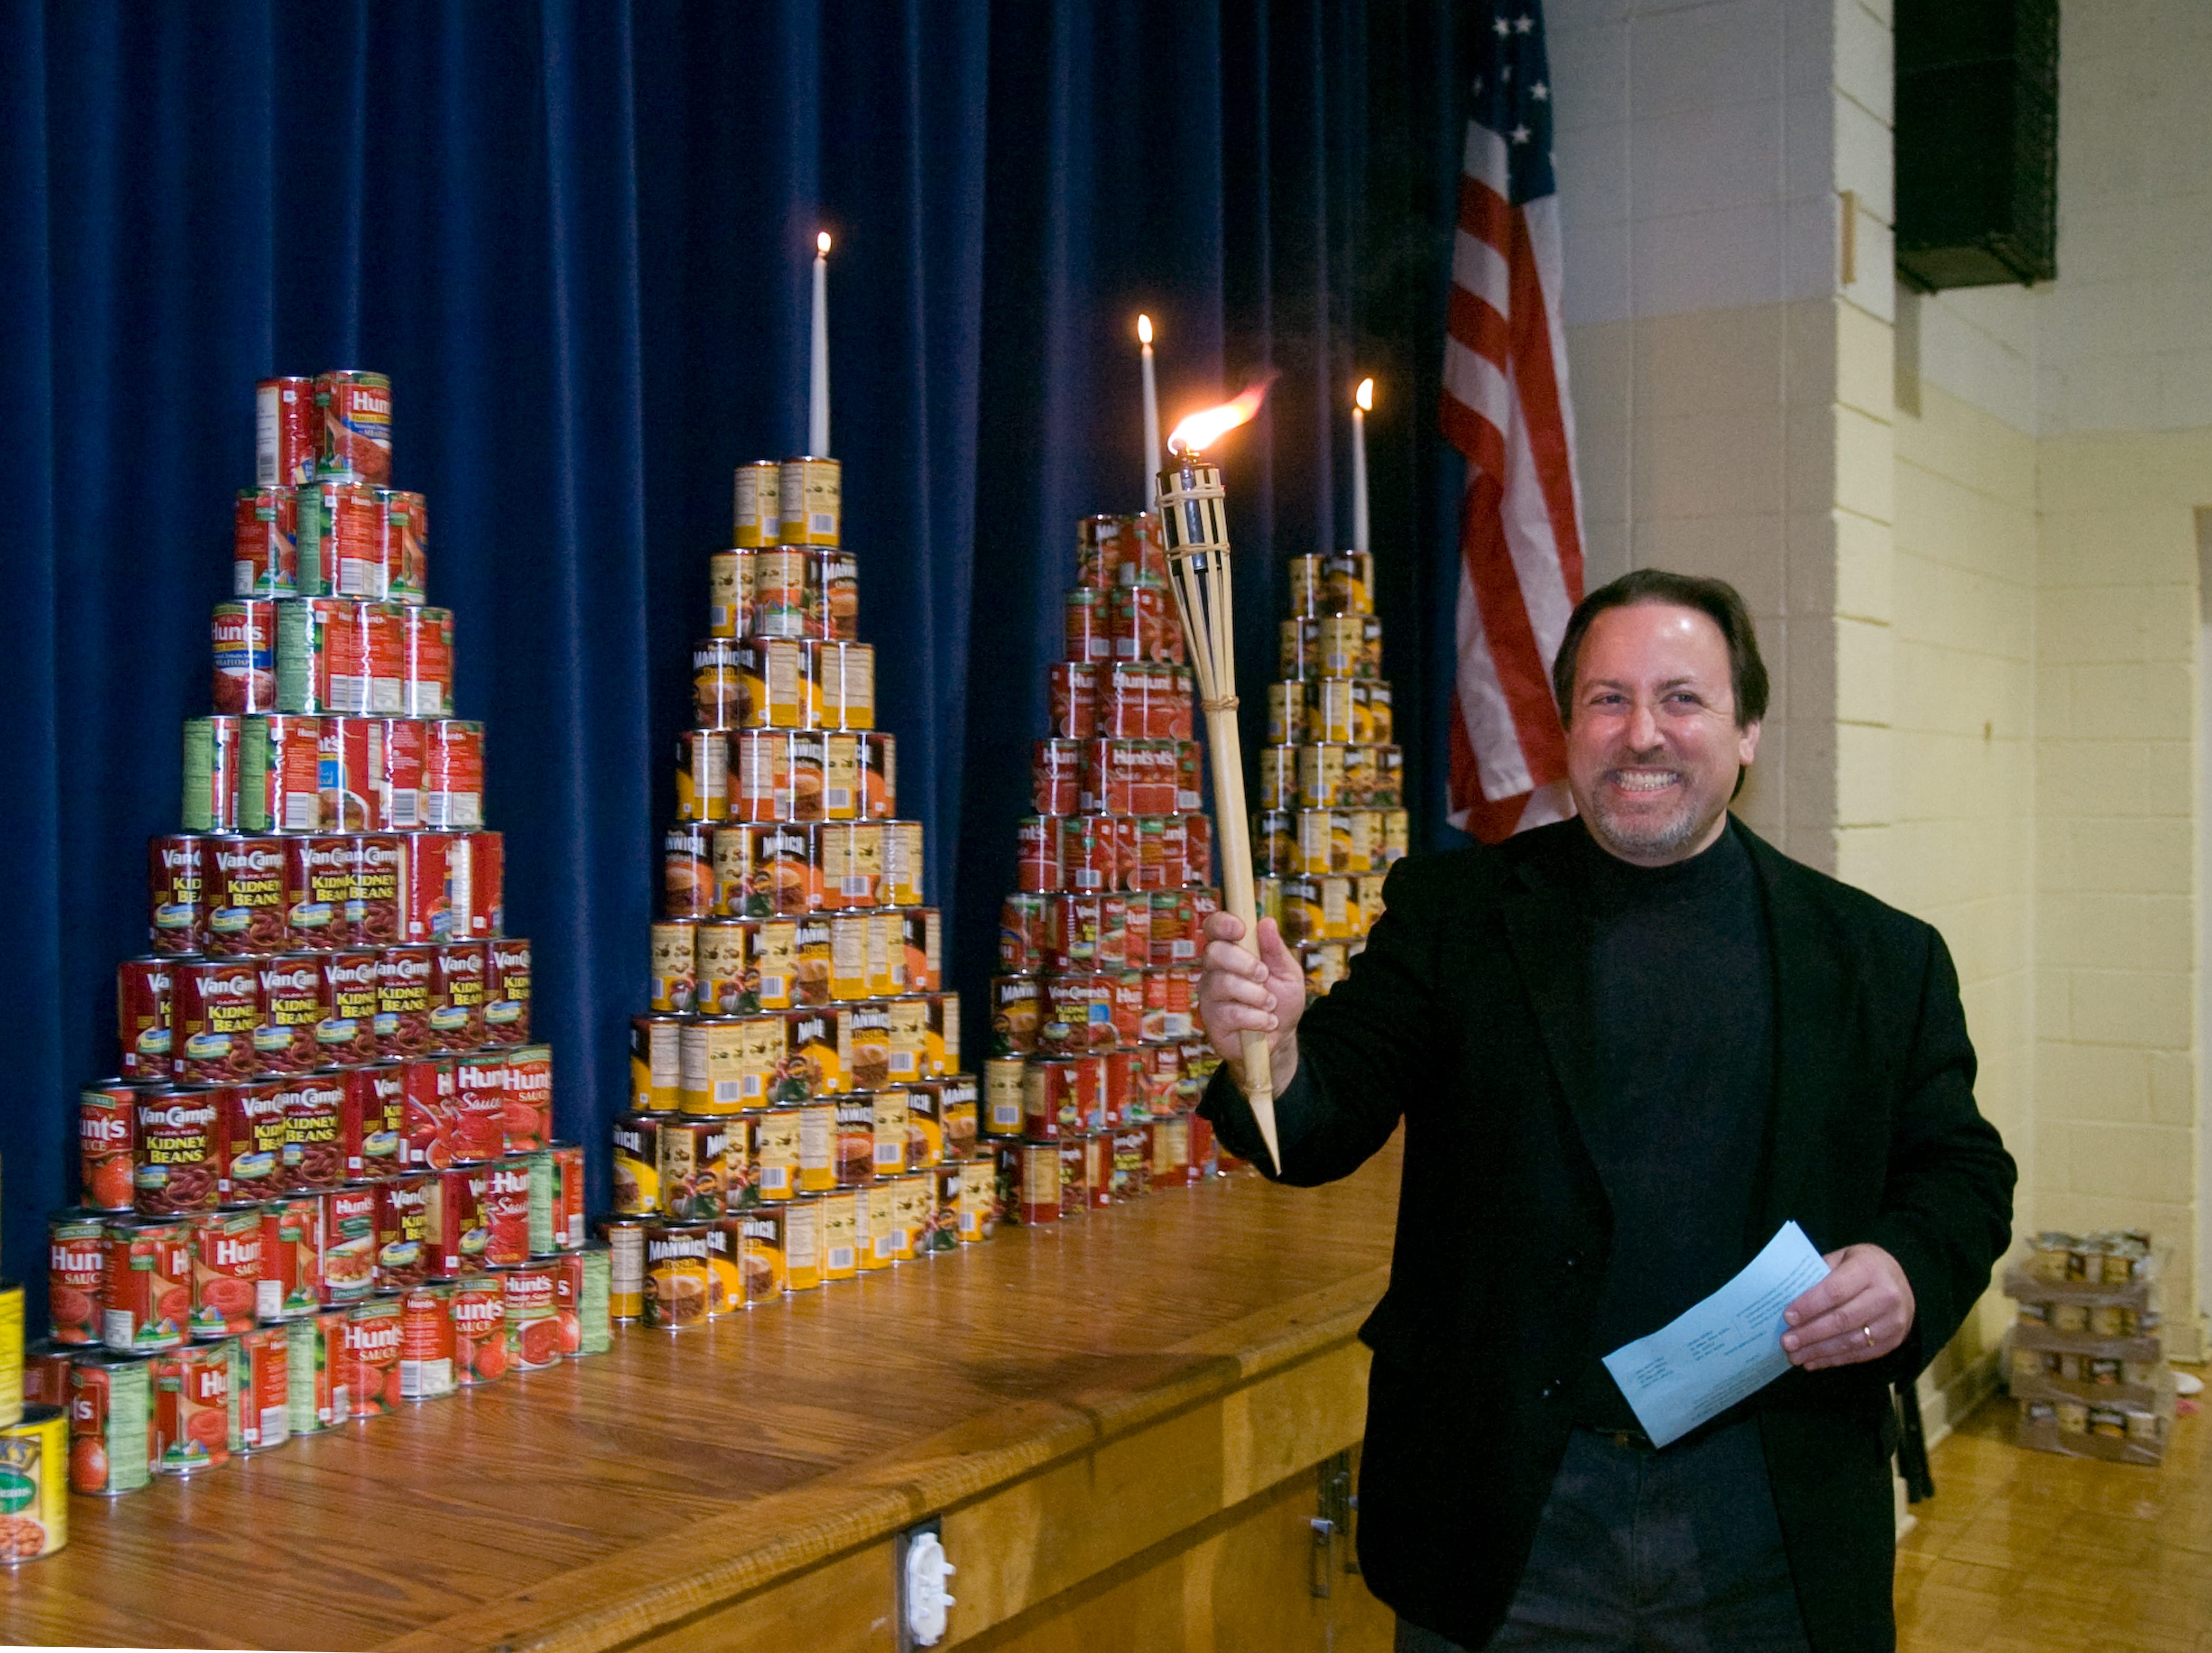 Music Director of the Knoxville Symphony Orchestra, Lucas Richman smiles after lighting three candles on a menorah constructed of donated cans of food on Sunday, Dec 13, 2009 at the Arnstein Jewish Community Center. The event is the third annual Menorah Madness which collected cans of food that will be donated to Second Harvest Harvest Food Bank.